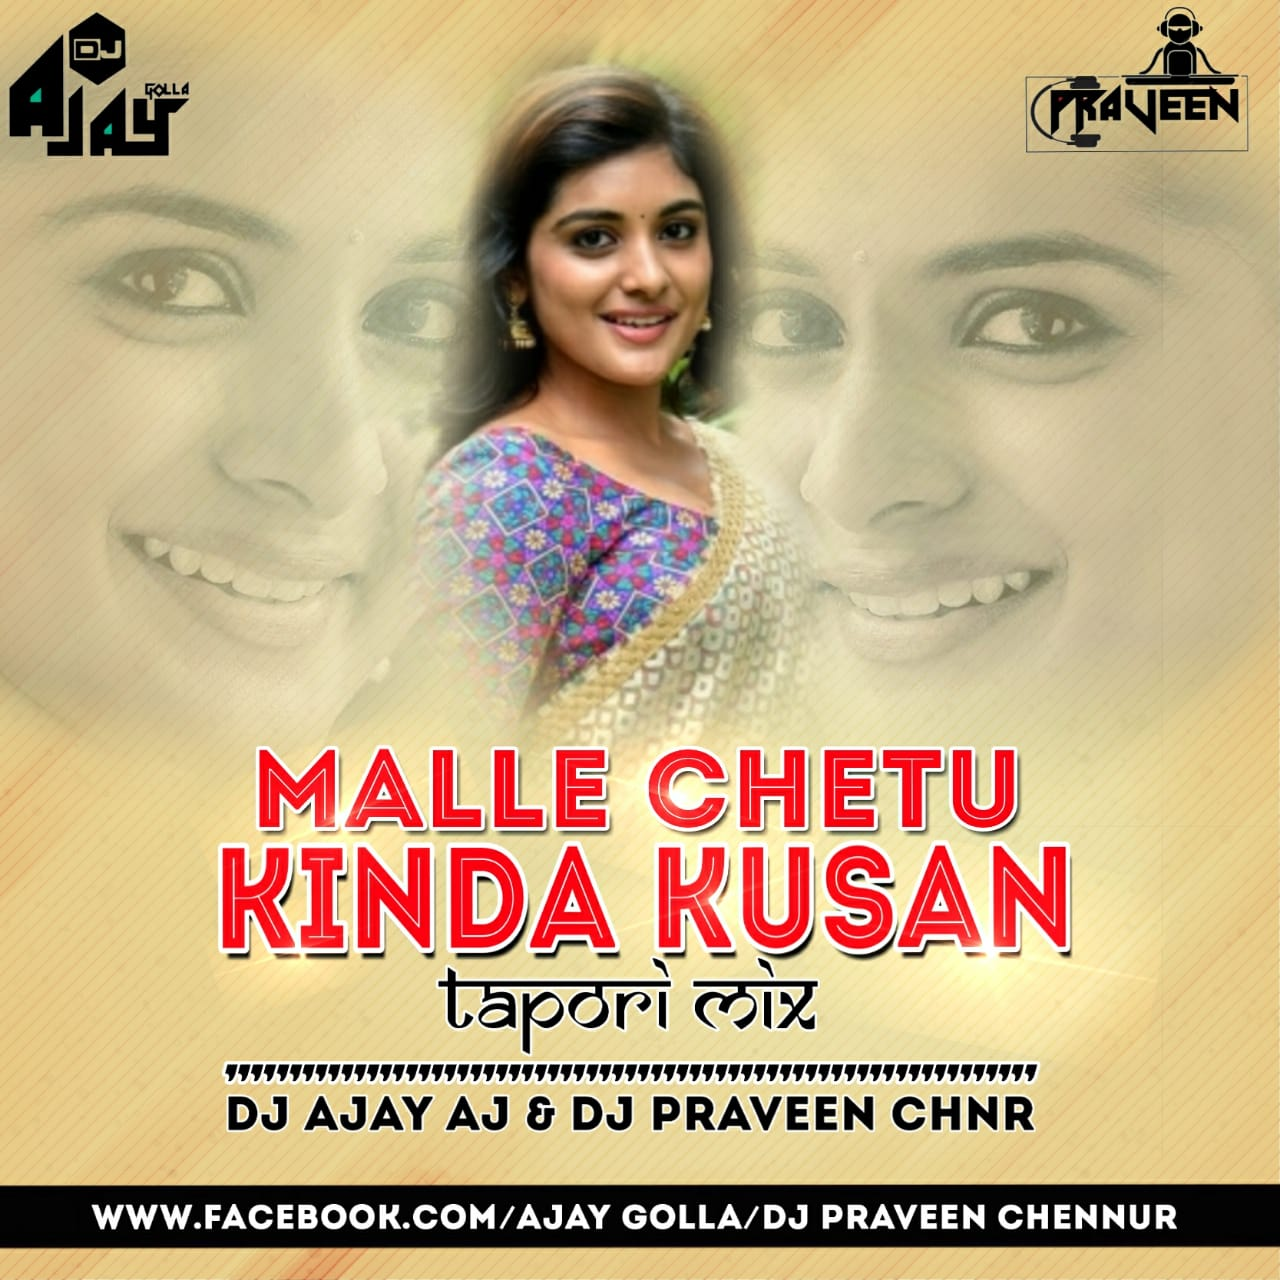 Malle Chettu Kinda Kusunna Song, Malle Chettu Kinda Dj Song, Malle Chettu Kinda Dj, Malle Chettu Kinda Kusunna Song Dj, Malle Chettu Kinda Kusunna Private Song, Malle Chettu Kinda Kusunna Dj Song Telugu, Malle Chettu Kinda Song, Malle Chettu Kinda Dj Song Download, Malle Chettu Kinda Kusunna Dj Song, Malle Chettu Kinda Nuvvu Gumma Song Download, Malle Chettu Kinda Mp3 Dj Song Download, Malle Chettu Kinda Mp3, Malle Chettu Kinda Manjula, Malle Chettu Kinda Madano Na Vayyari, Malle Chettu Kinda Madano Na Vayyari Song, Malle Chettu Kinda Nuvvu Gumma, Malle Chettu Kinda Kusunna Naa Song Download, Malle Chettu Kinda Song Dj, Malle Chettu Kinda Kusunna Song, Malle Chettu Kinda Dj Song, Malle Chettu Kinda Dj, Malle Chettu Kinda Kusunna Song Dj, Malle Chettu Kinda Kusunna Private Song, Malle Chettu Kinda Kusunna Dj Song Telugu, Malle Chettu Kinda Song, Malle Chettu Kinda Dj Song Download, Malle Chettu Kinda Kusunna Dj Song, Malle Chettu Kinda Nuvvu Gumma Song Download, Malle Chettu Kinda Mp3 Dj Song Download, Malle Chettu Kinda Mp3, Malle Chettu Kinda Manjula, Malle Chettu Kinda Madano Na Vayyari, Malle Chettu Kinda Madano Na Vayyari Song, Malle Chettu Kinda Nuvvu Gumma, Malle Chettu Kinda Kusunna Naa Song Download, Malle Chettu Kinda Song Dj